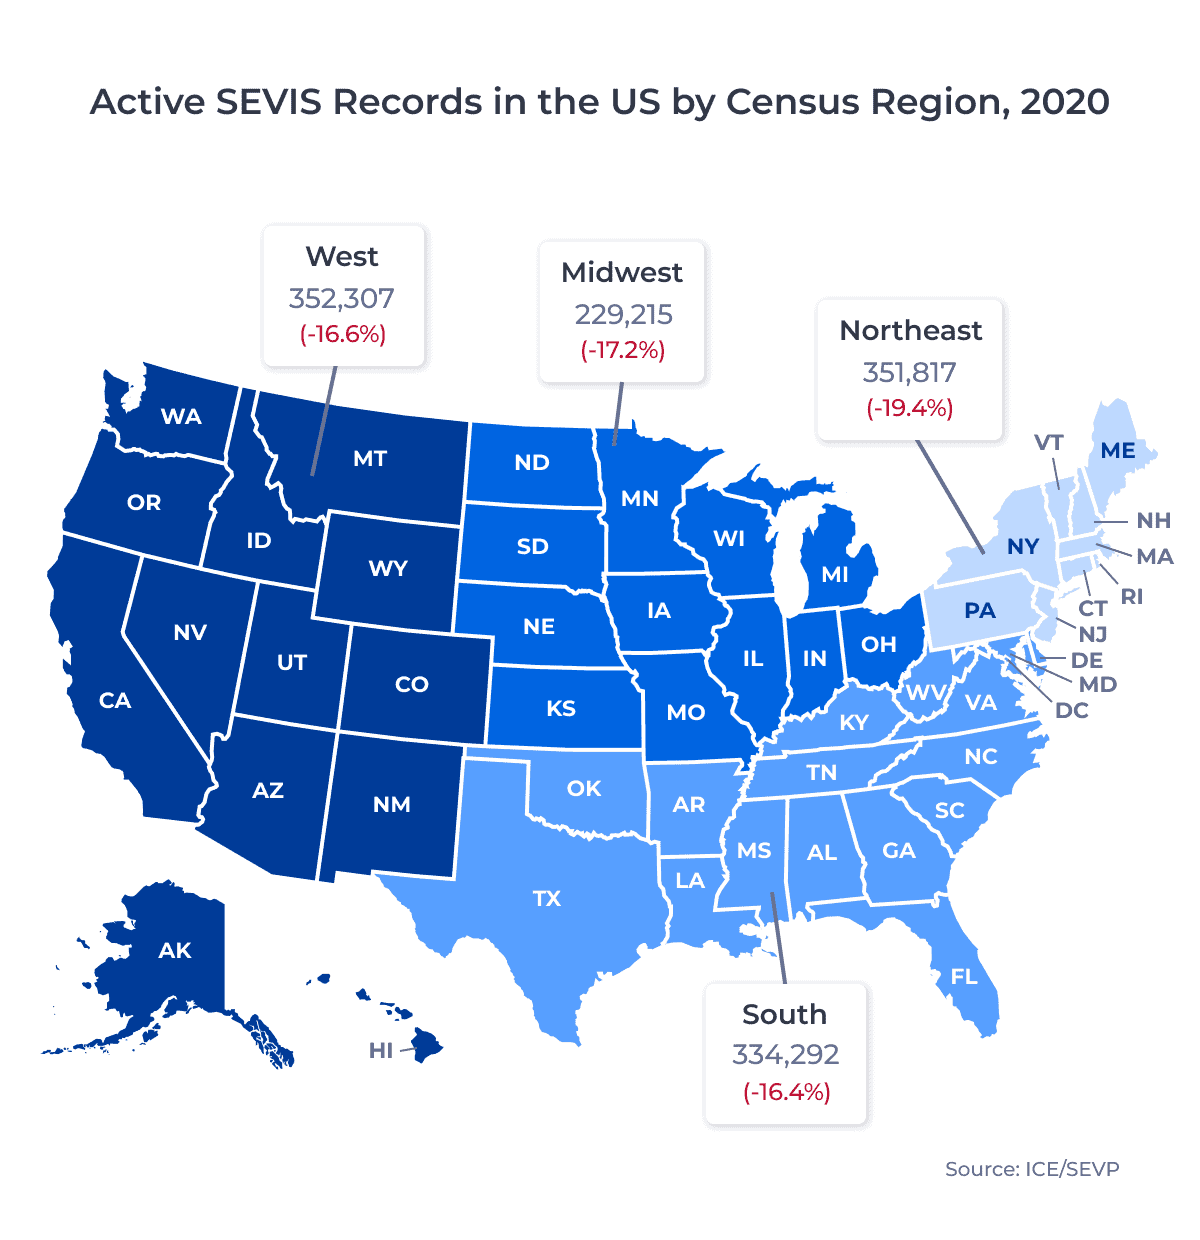 Map of the US showing the distribution of active SEVIS records in the country by census region in 2020. Examined in detail below.